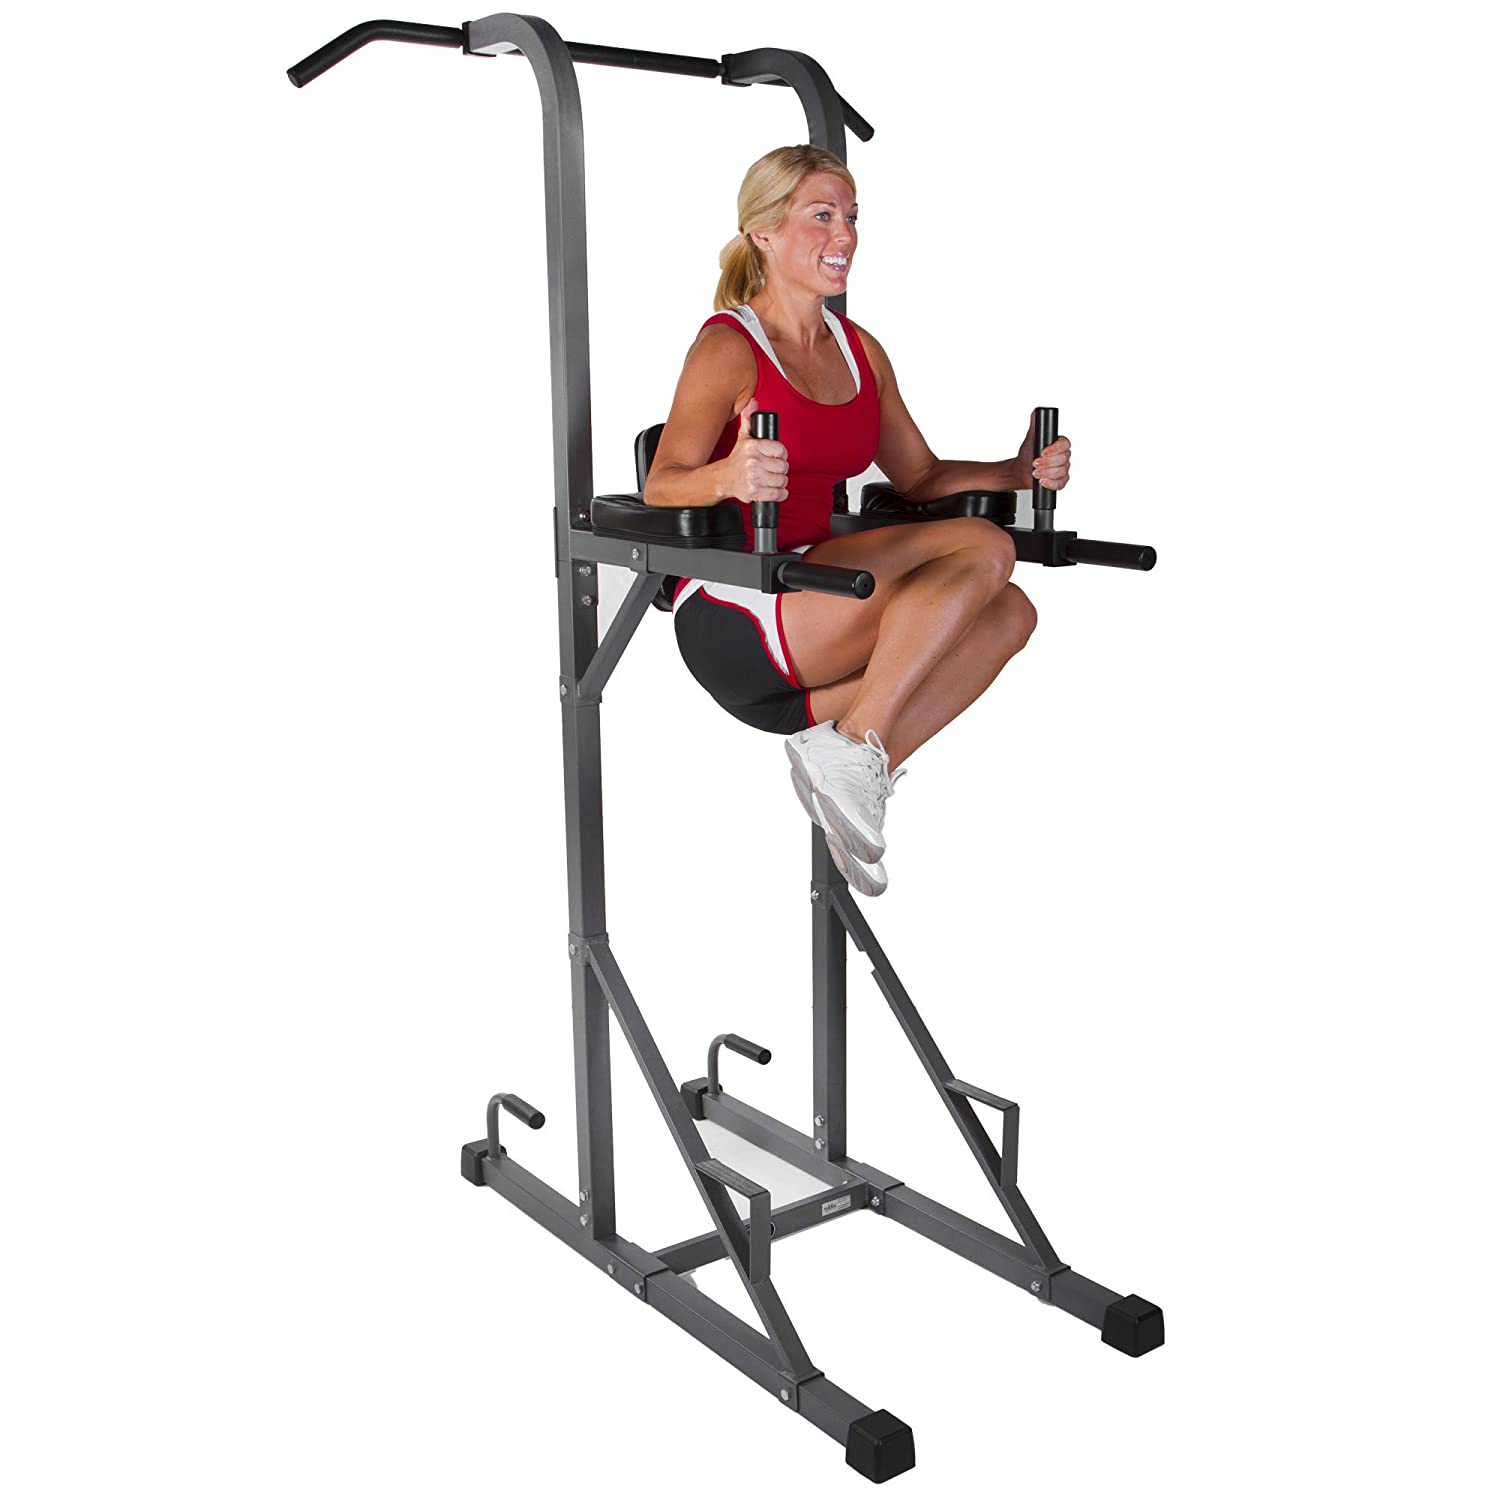 Top 5 Best Free Standing Pull Up Bars Reviews